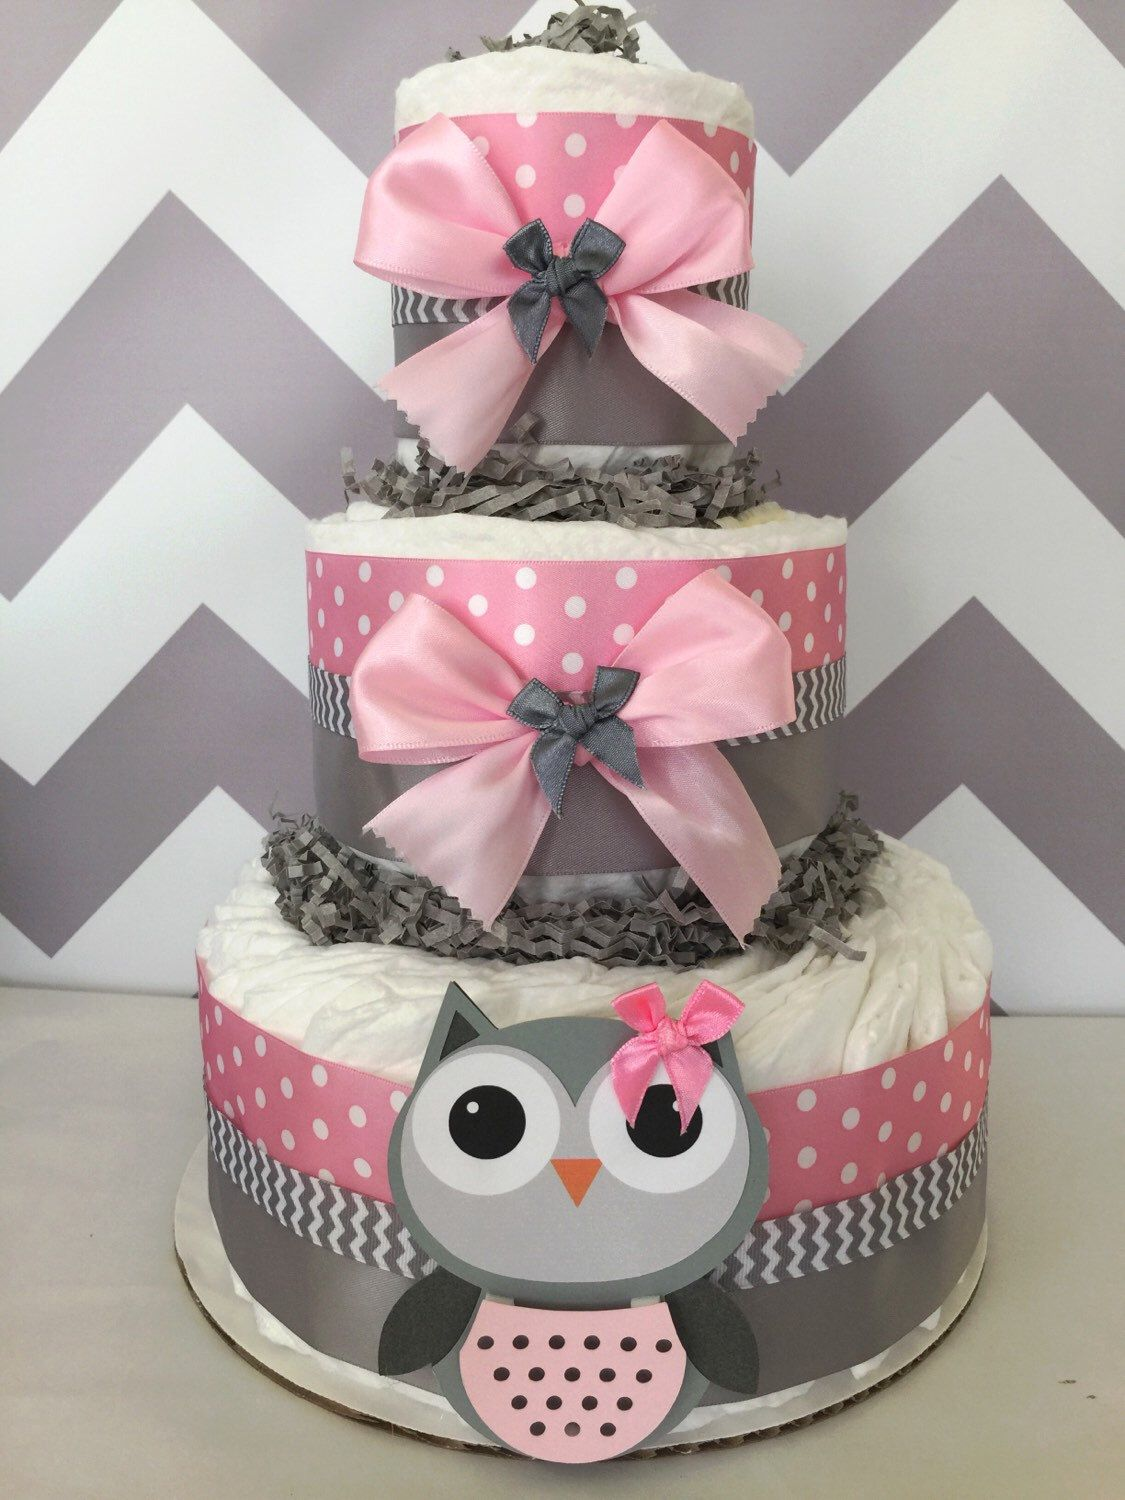 Phenomenal Owl Baby Shower Diaper Cake In Pink And Grey Owl Baby Shower Download Free Architecture Designs Scobabritishbridgeorg